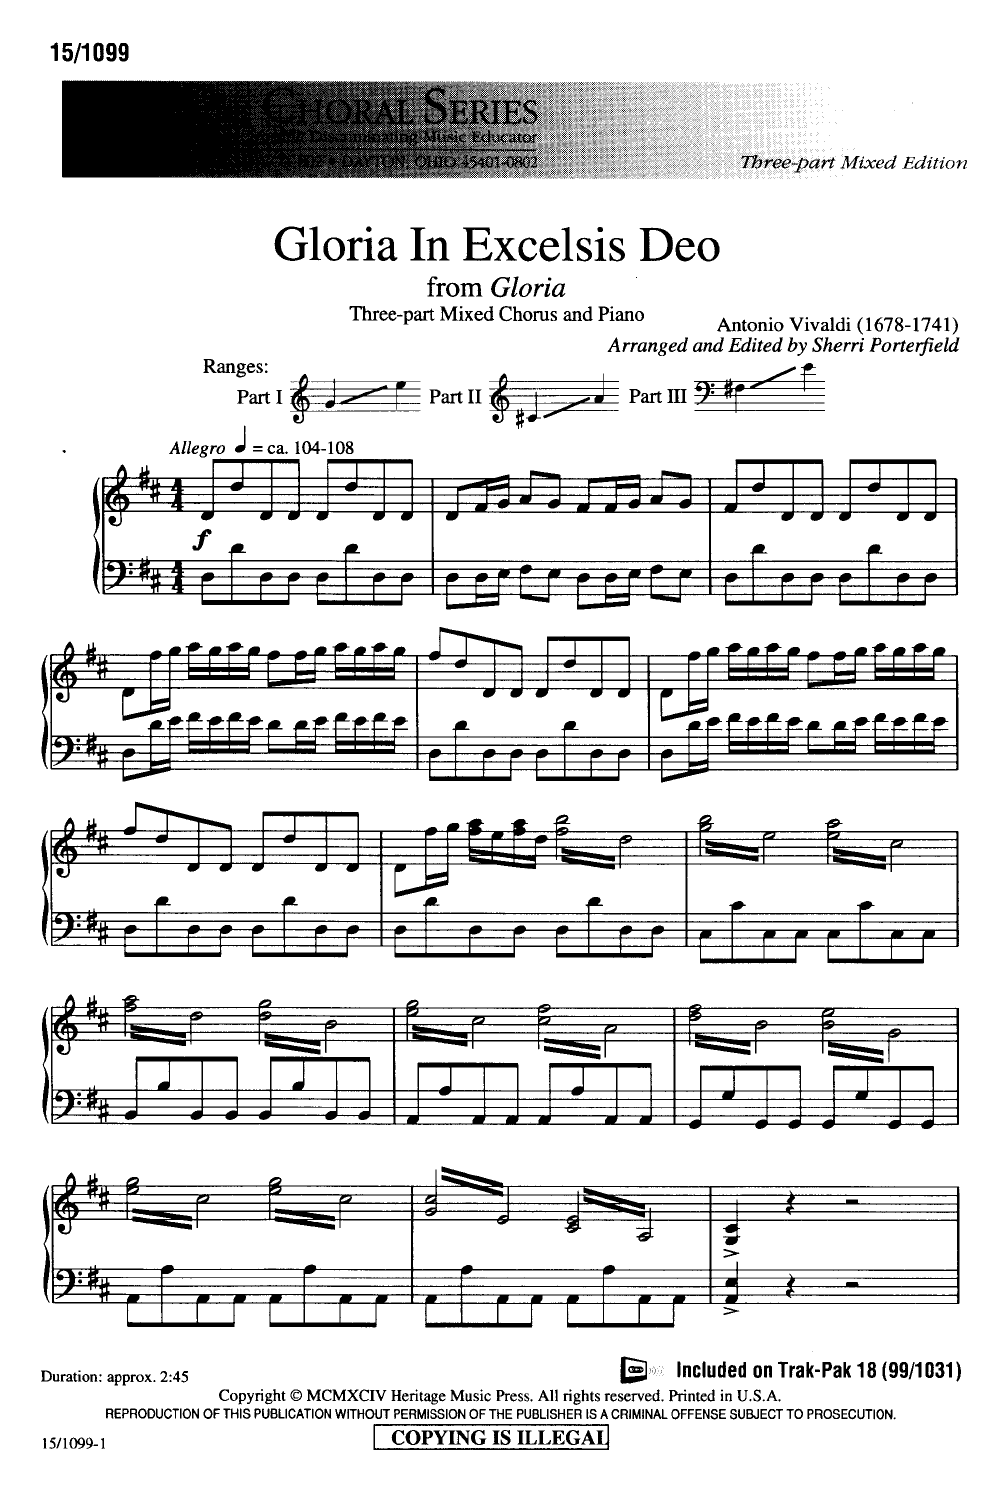 Gloria in excelsis deo sheet music